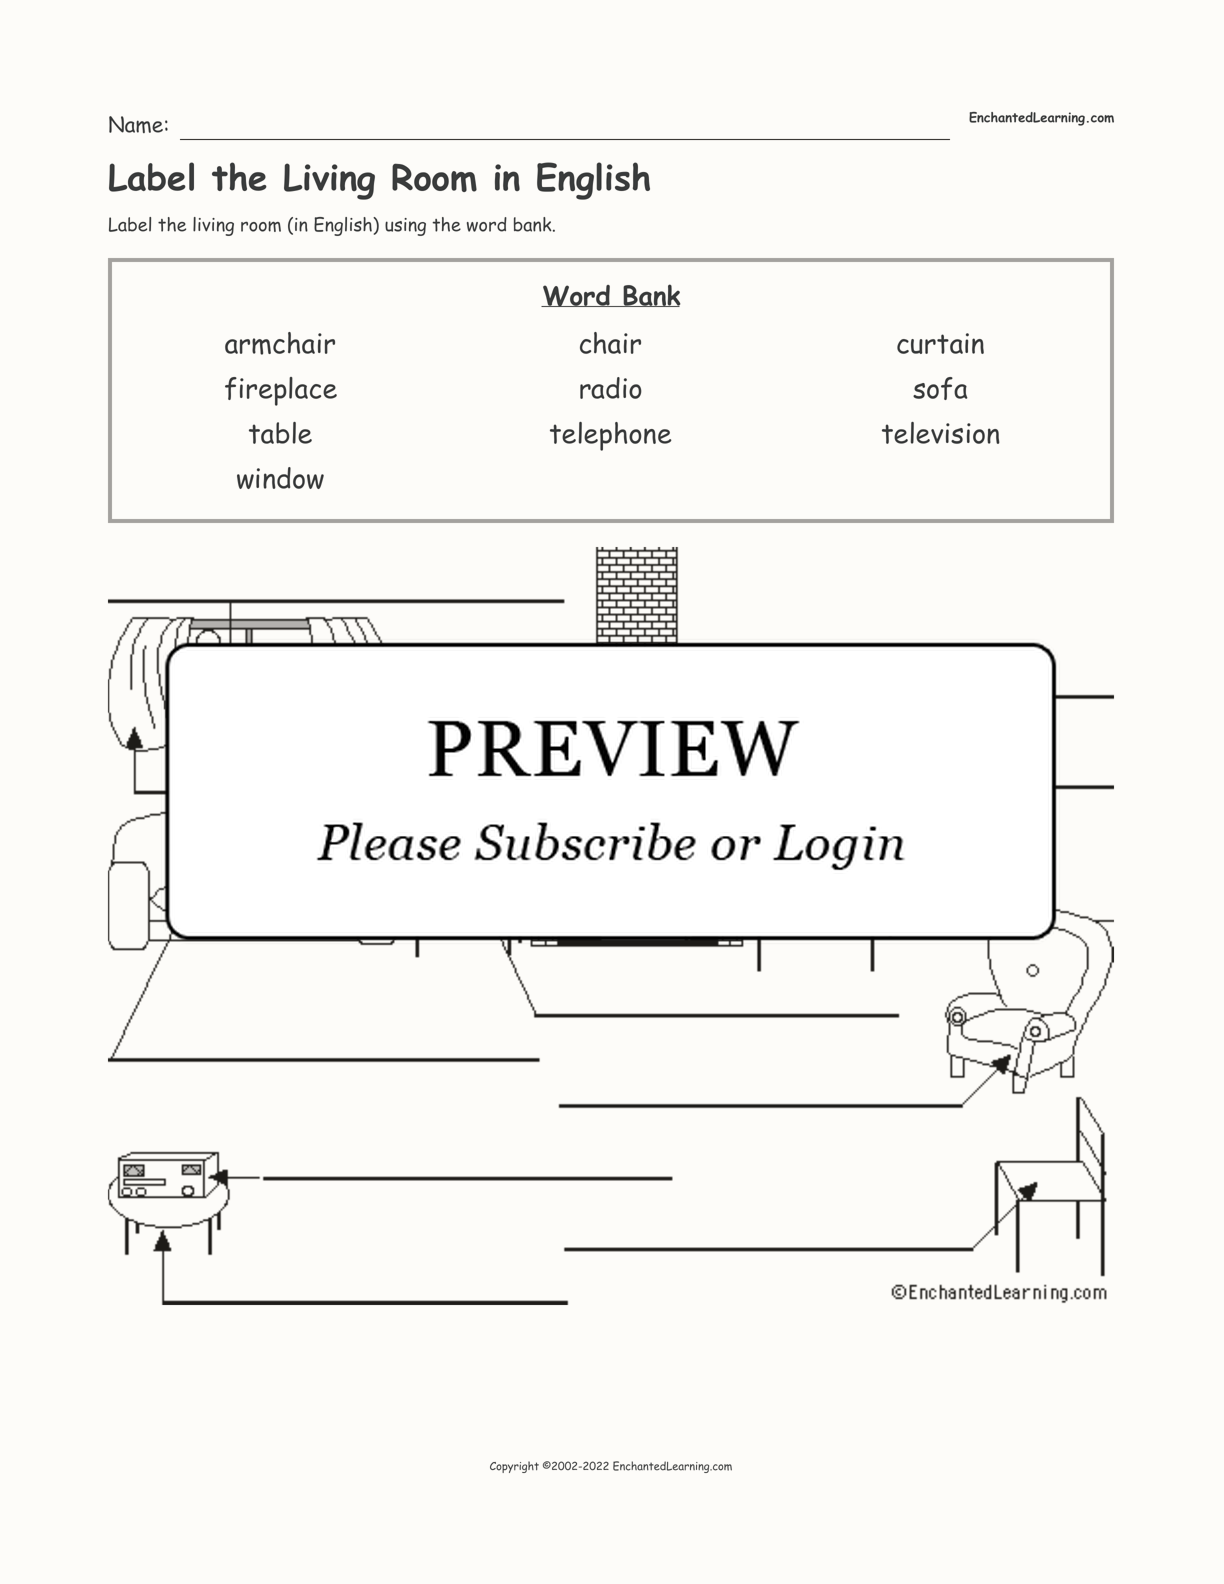 Label the Living Room in English interactive worksheet page 1